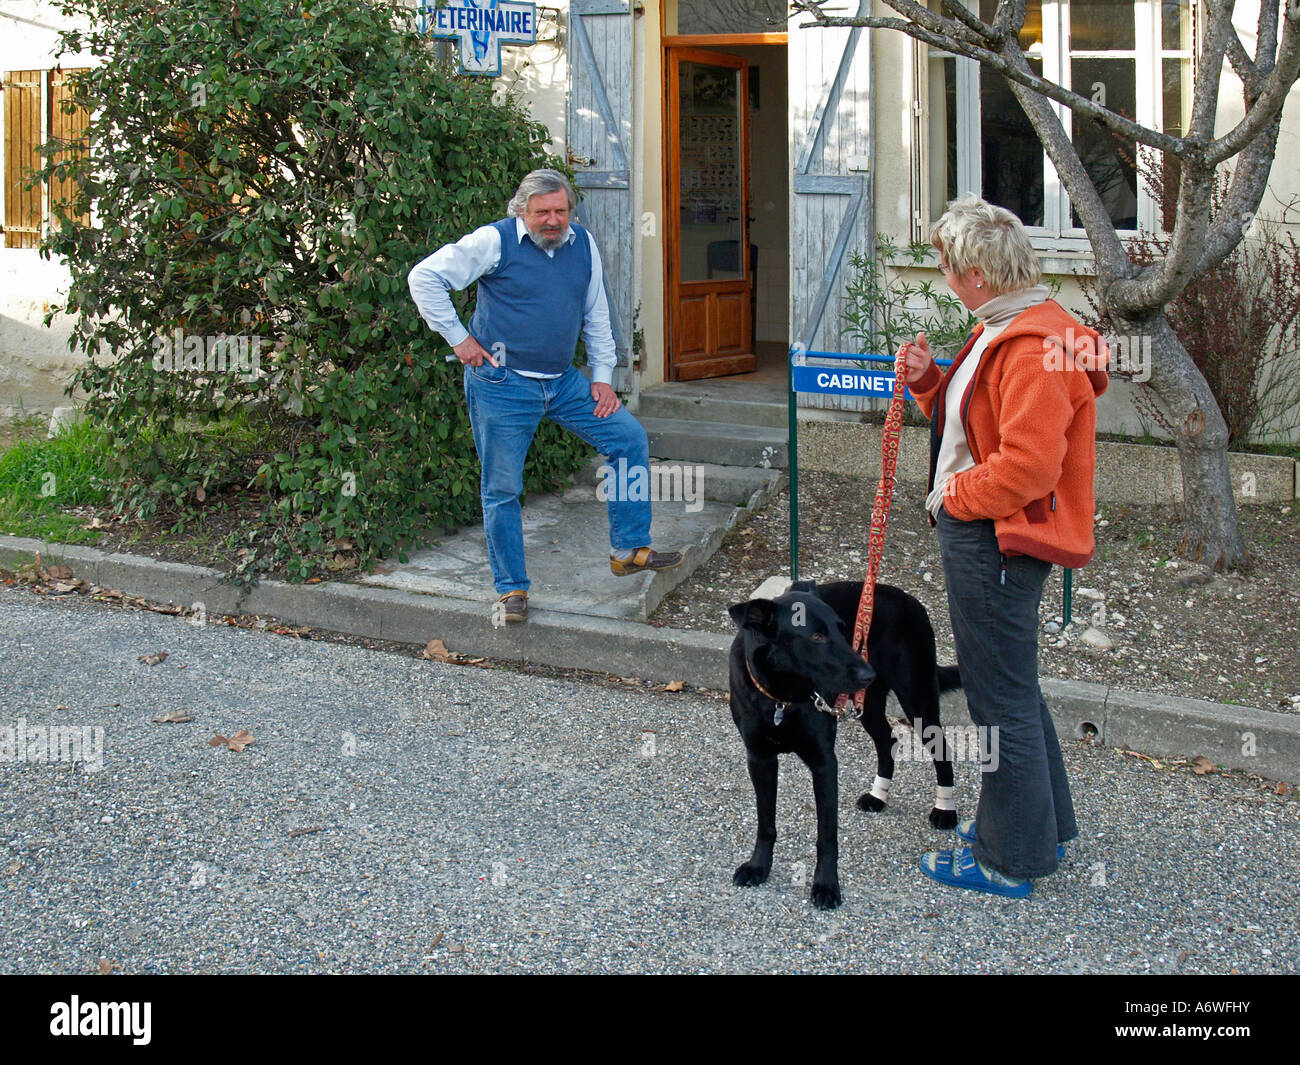 MR PR woman with a dog standing in front of small animal veterinary practice speaking with the veterinarian - Stock Image